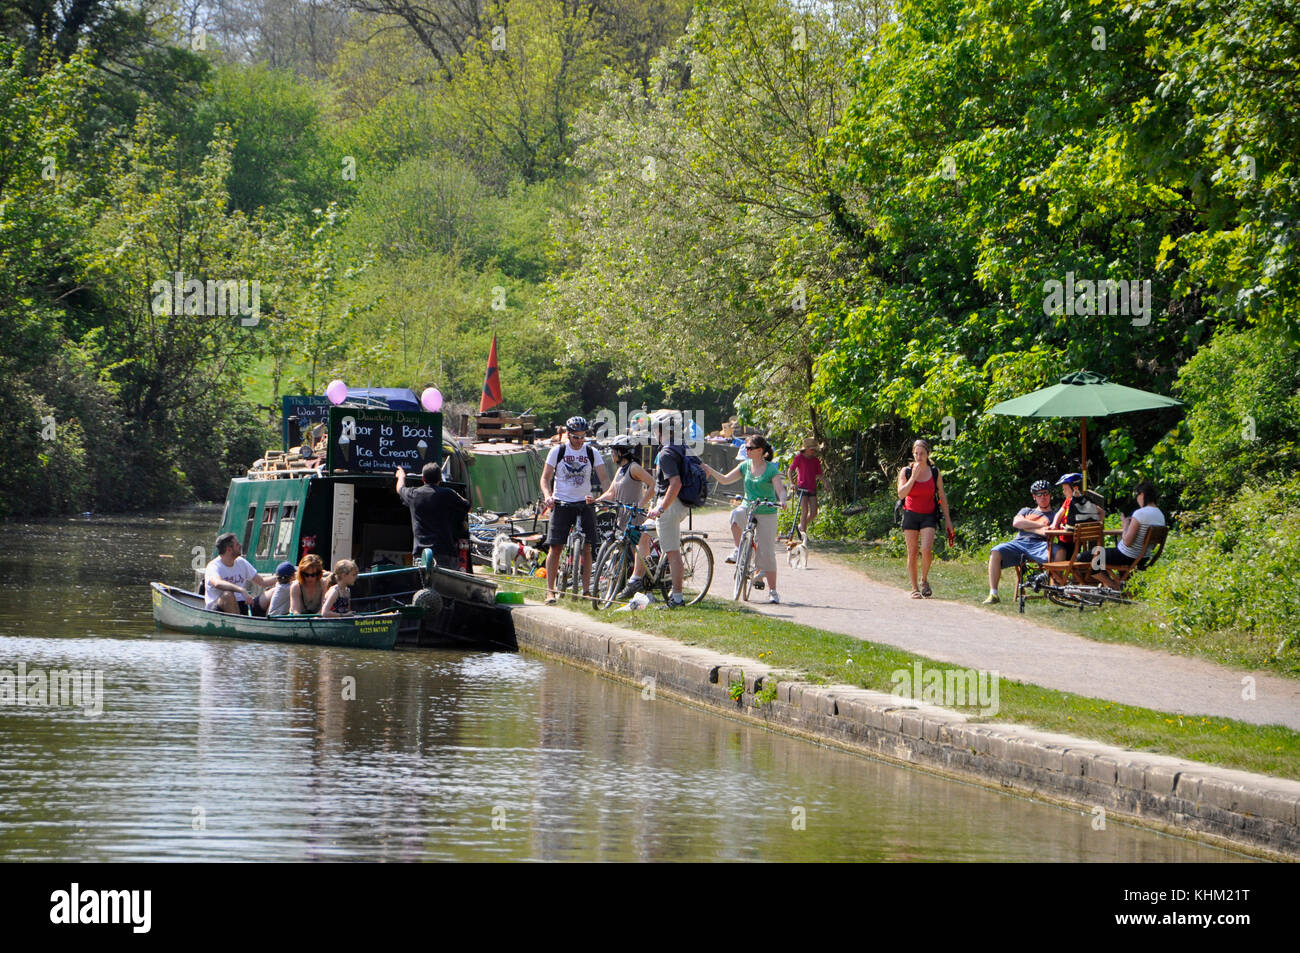 Ice Cream seller on barge caters for both towpath and waterbourne customers on a hot summers day on the Dundas Aquaduct - Stock Image